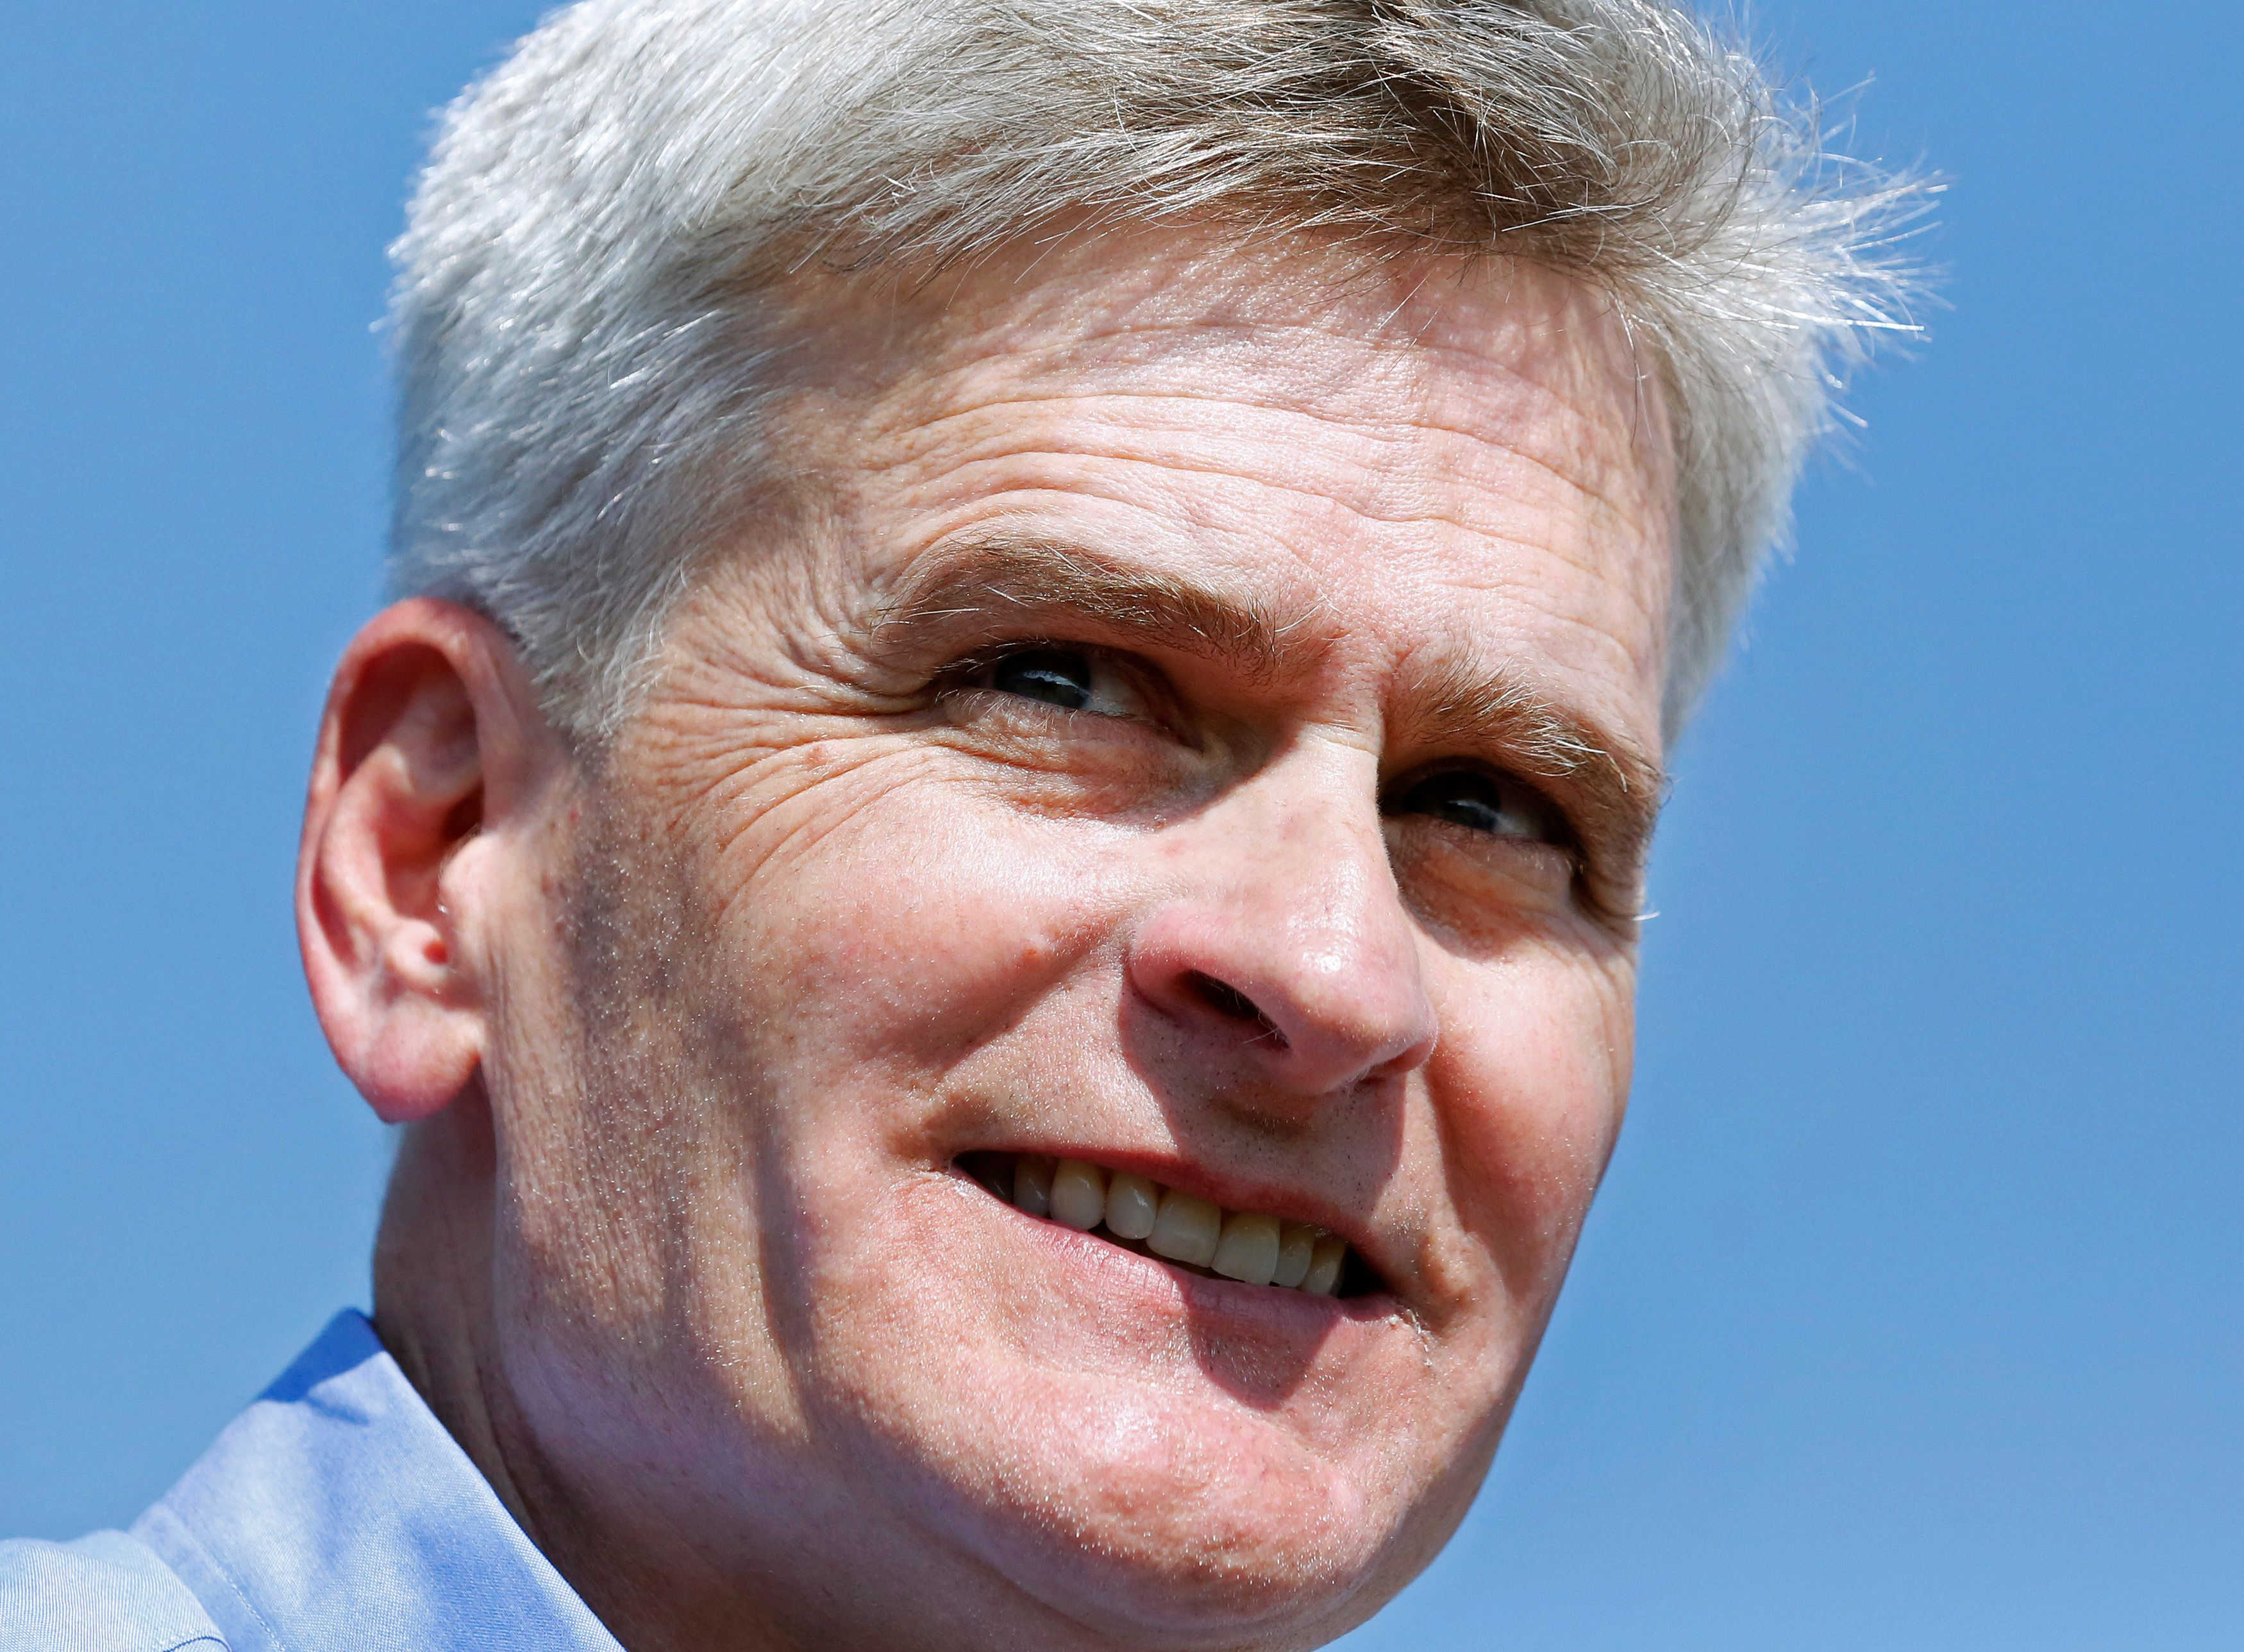 Bill Cassidy Responds To Jimmy Kimmel By Doubling Down On The Dishonesty